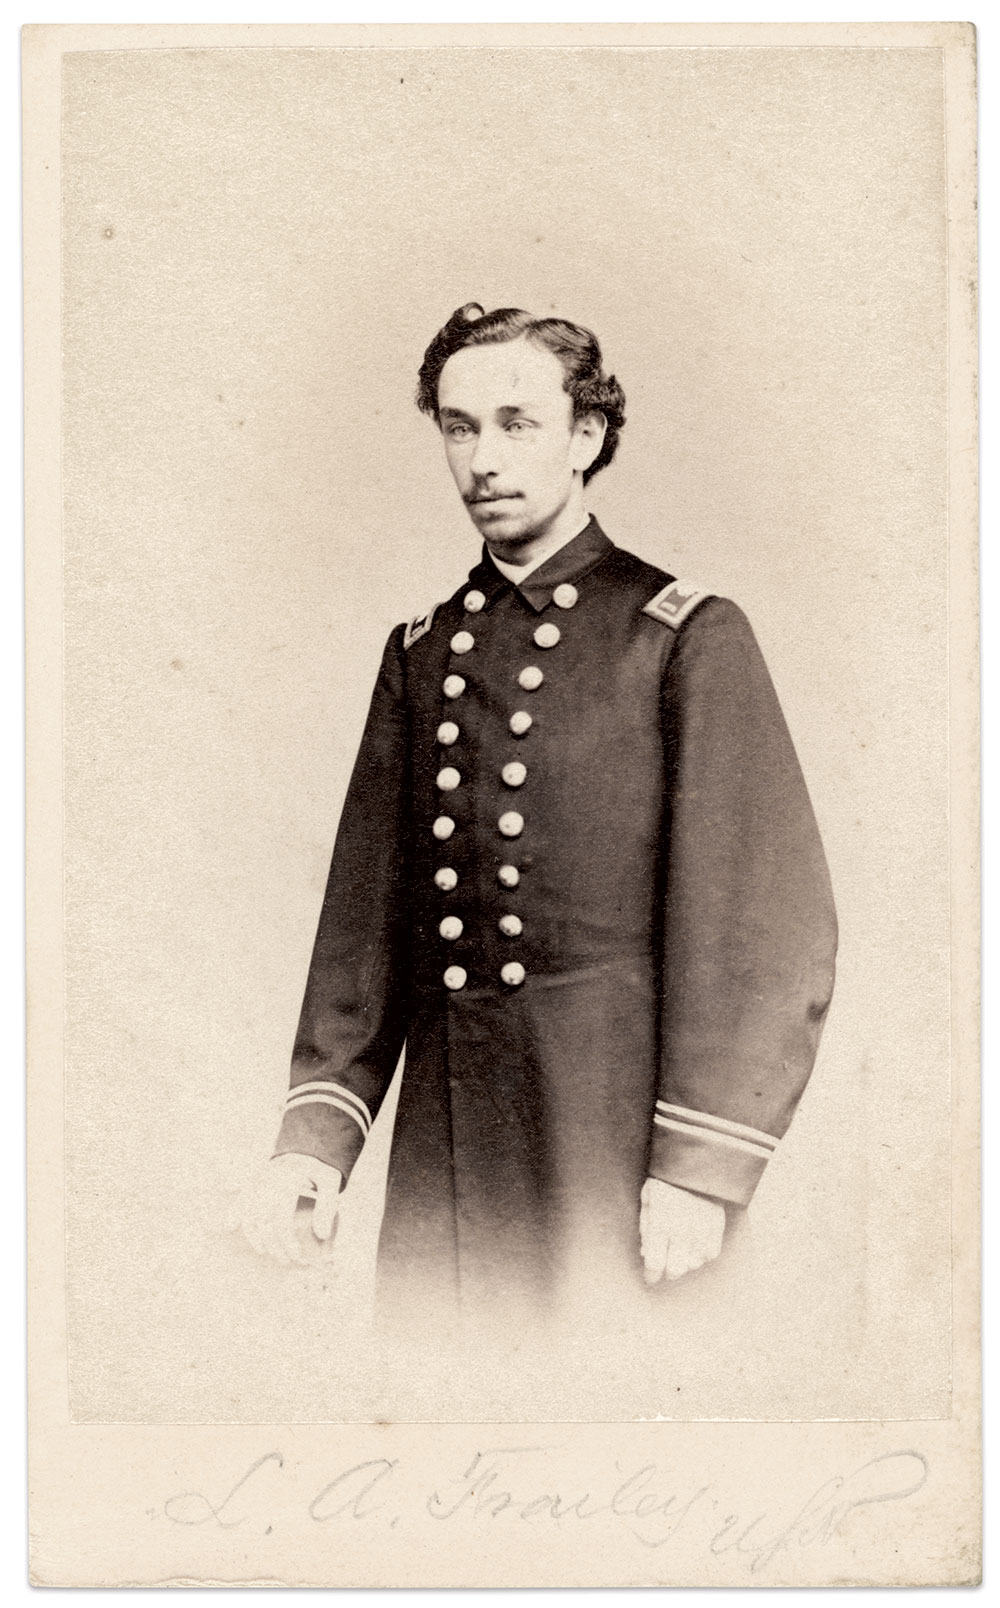 Leonard August Frailey, pictured as an assistant paymaster, circa 1864-1866. Carte de visite by Frederick Gutekunst of Philadelphia, Pa. Dale Niesen Collection.